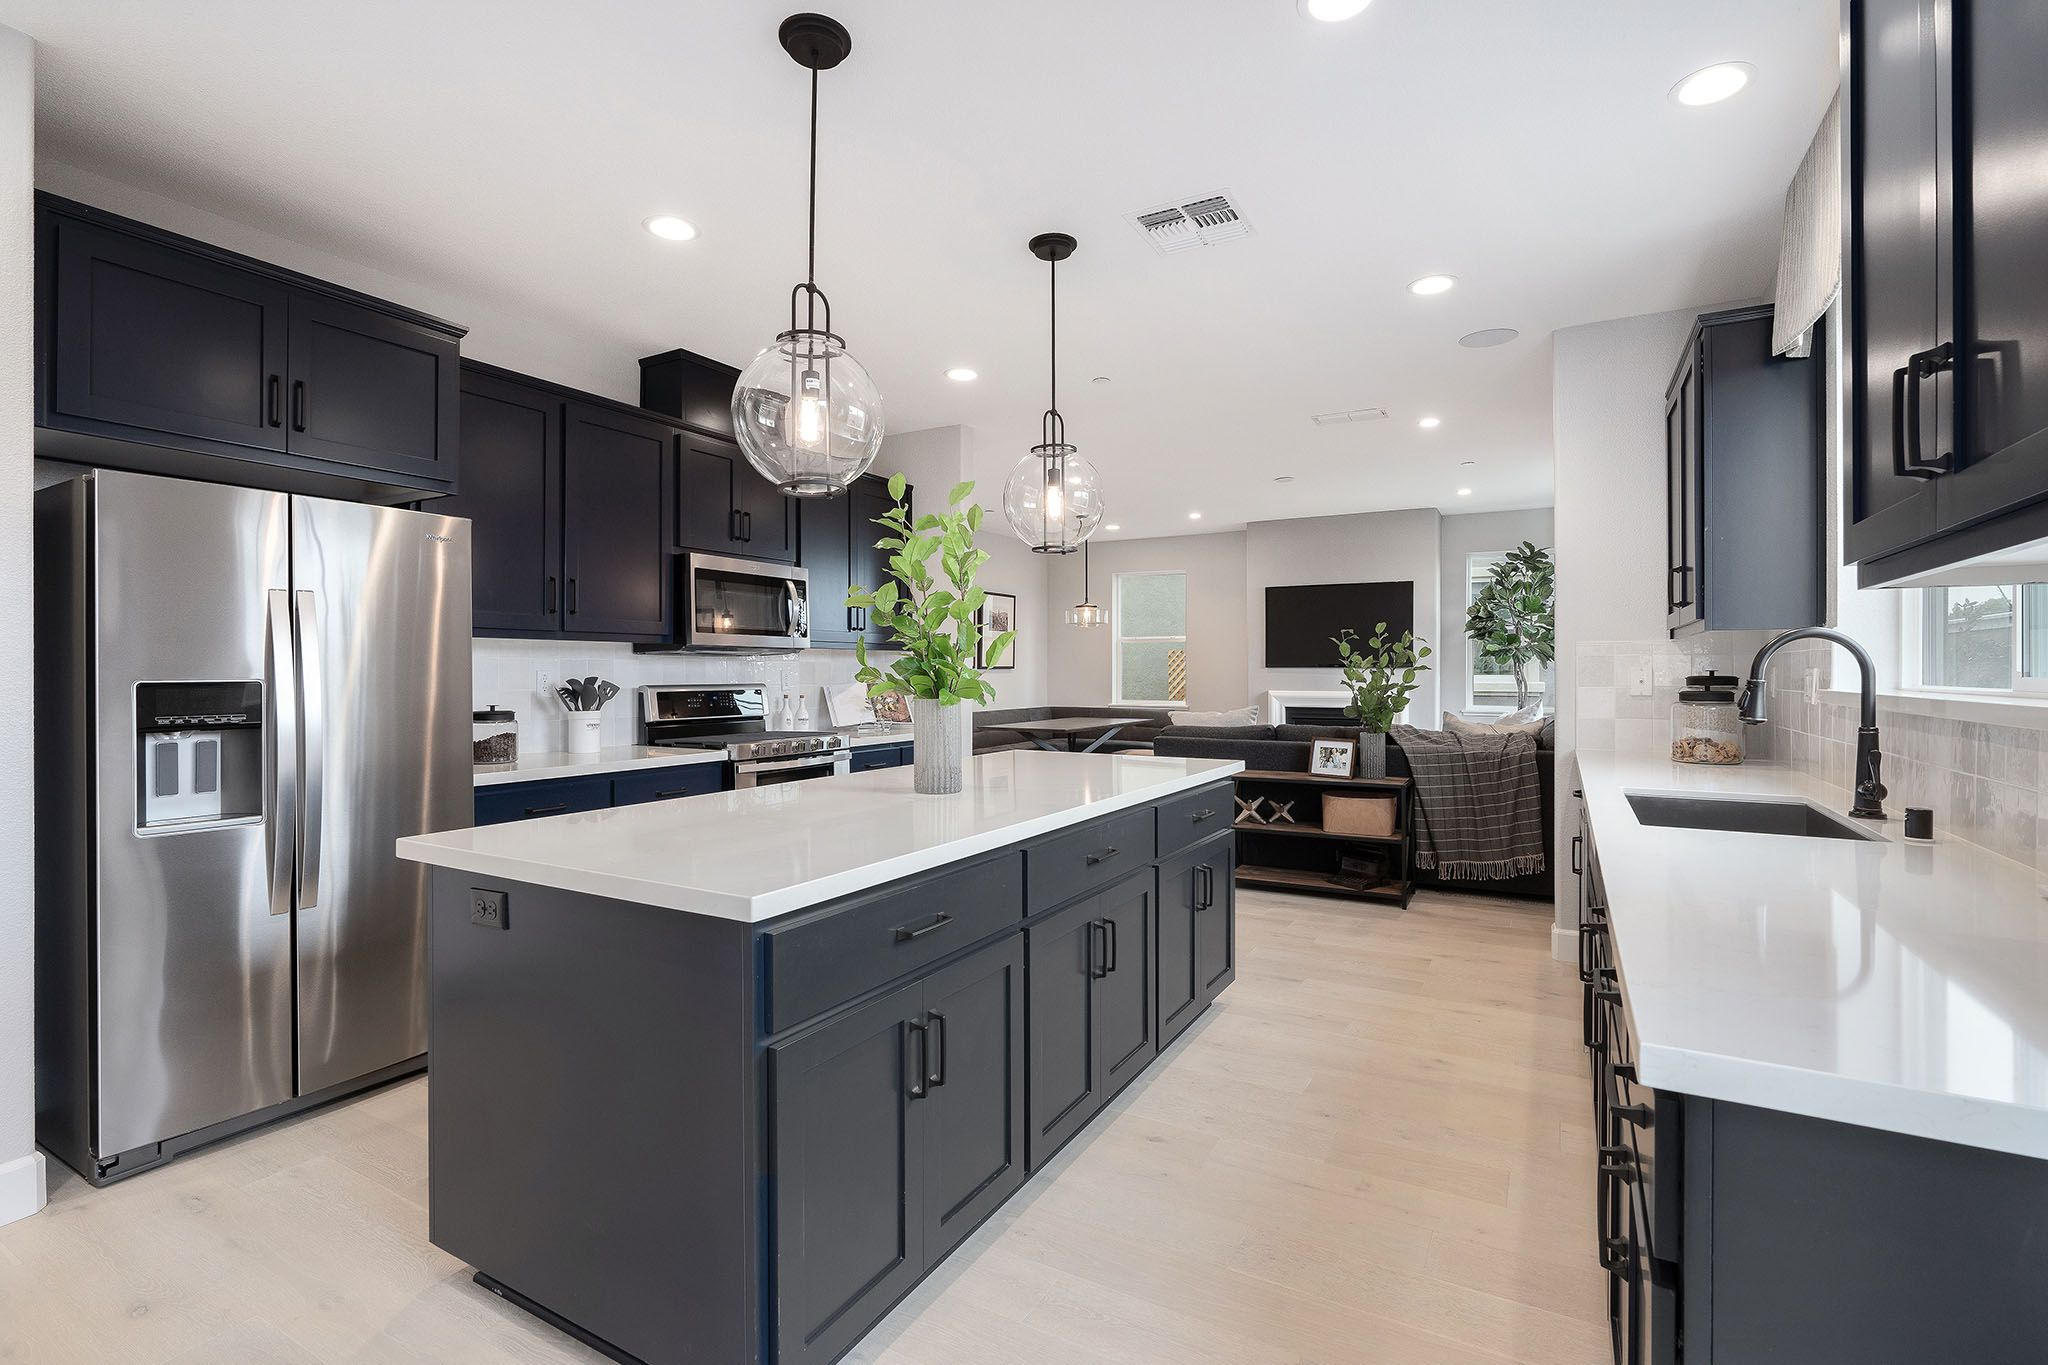 Kitchen featured in the Cristata By Discovery Homes in Vallejo-Napa, CA